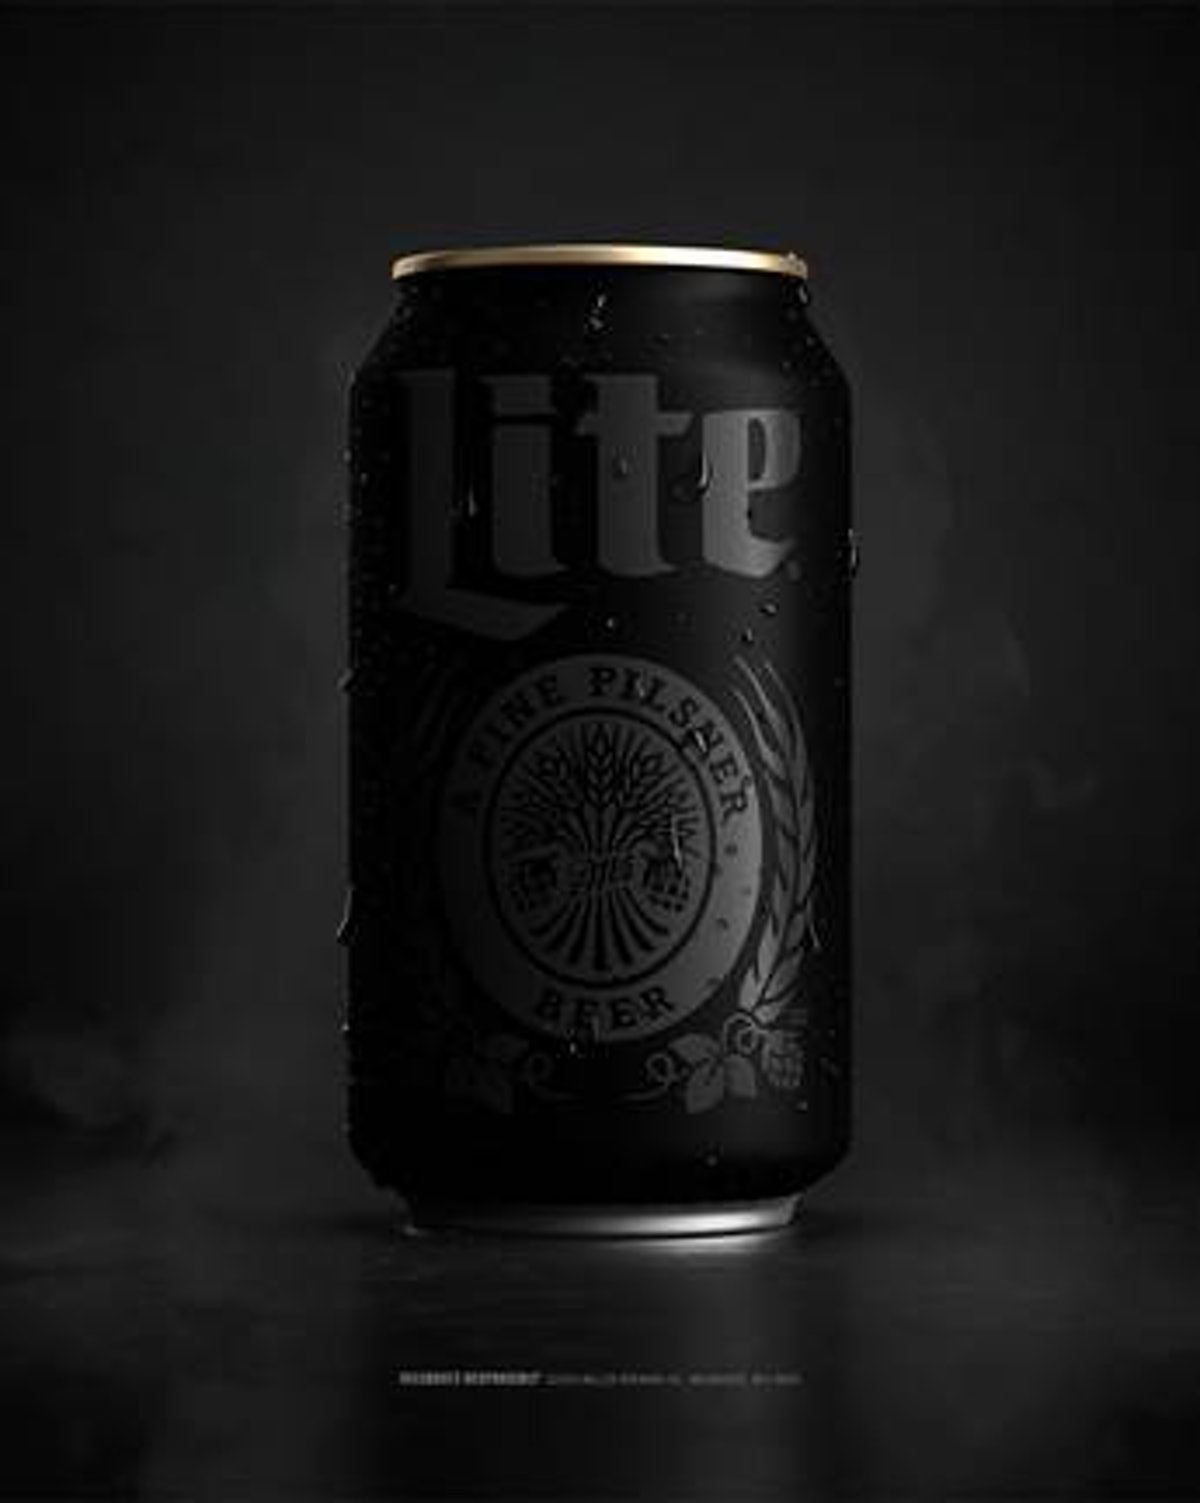 Miller Lite is giving you free beer if you unfollow its social media pages.